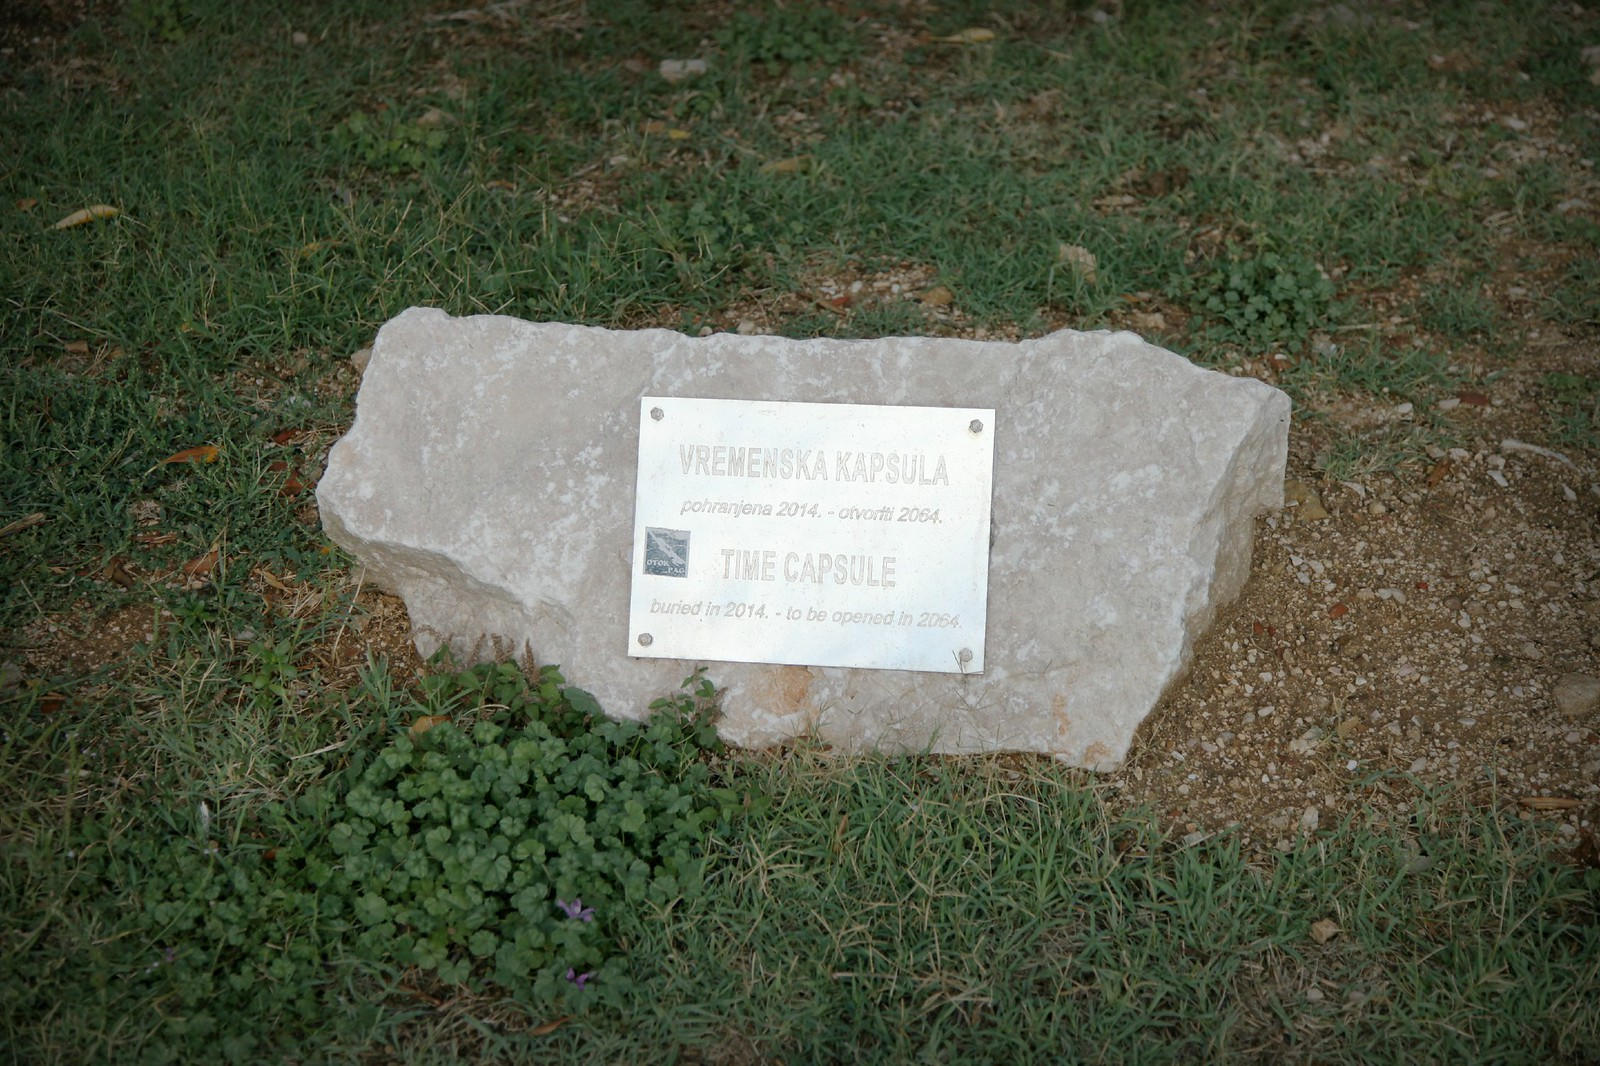 time capsule in pag golija island croatia city town center capital park vremenska kapsula buried in 2014 to be opened in 2064